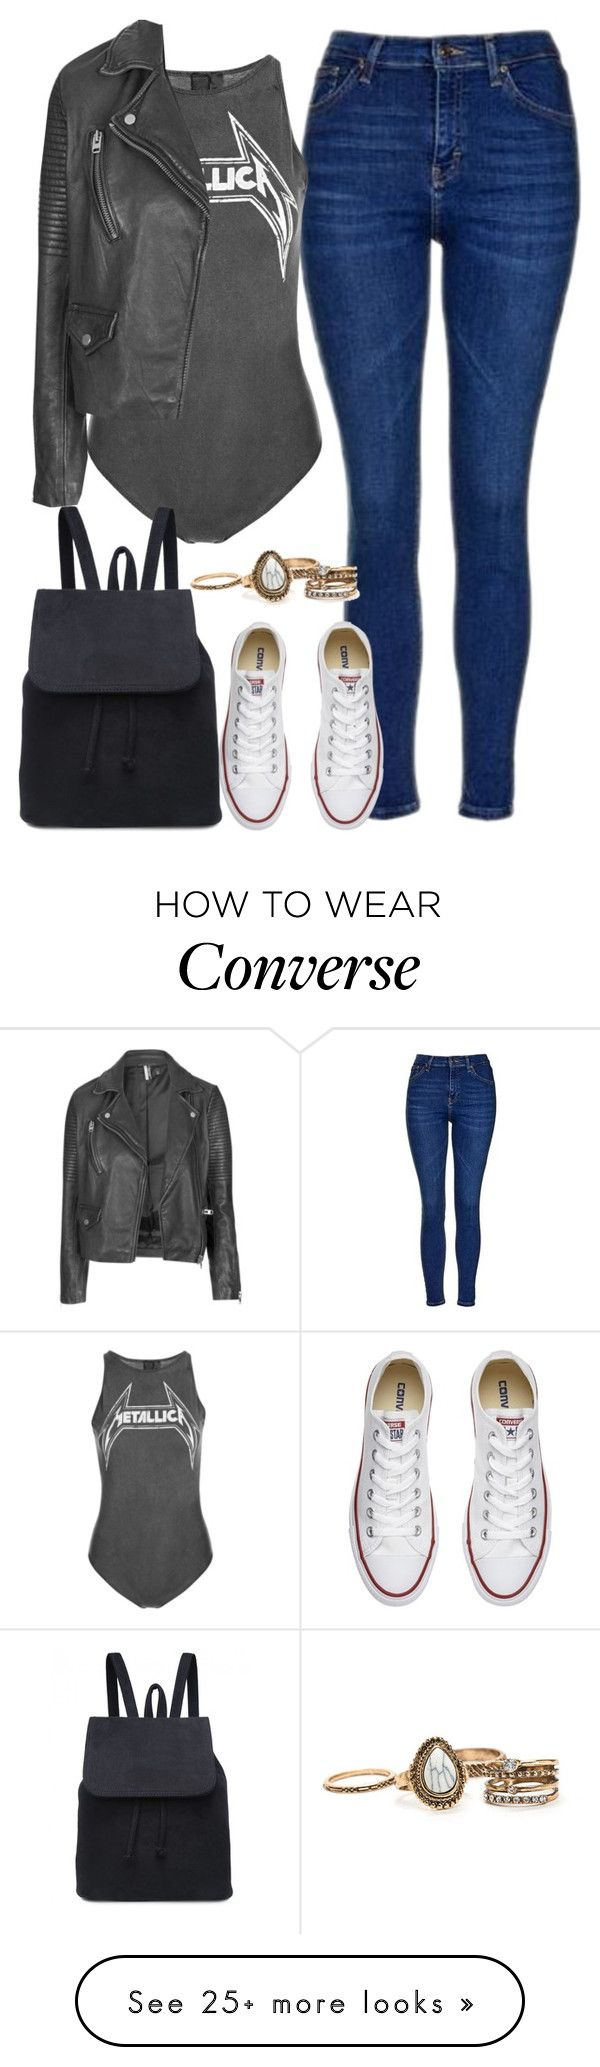 """x"" by welove1 on Polyvore featuring Topshop and Converse"